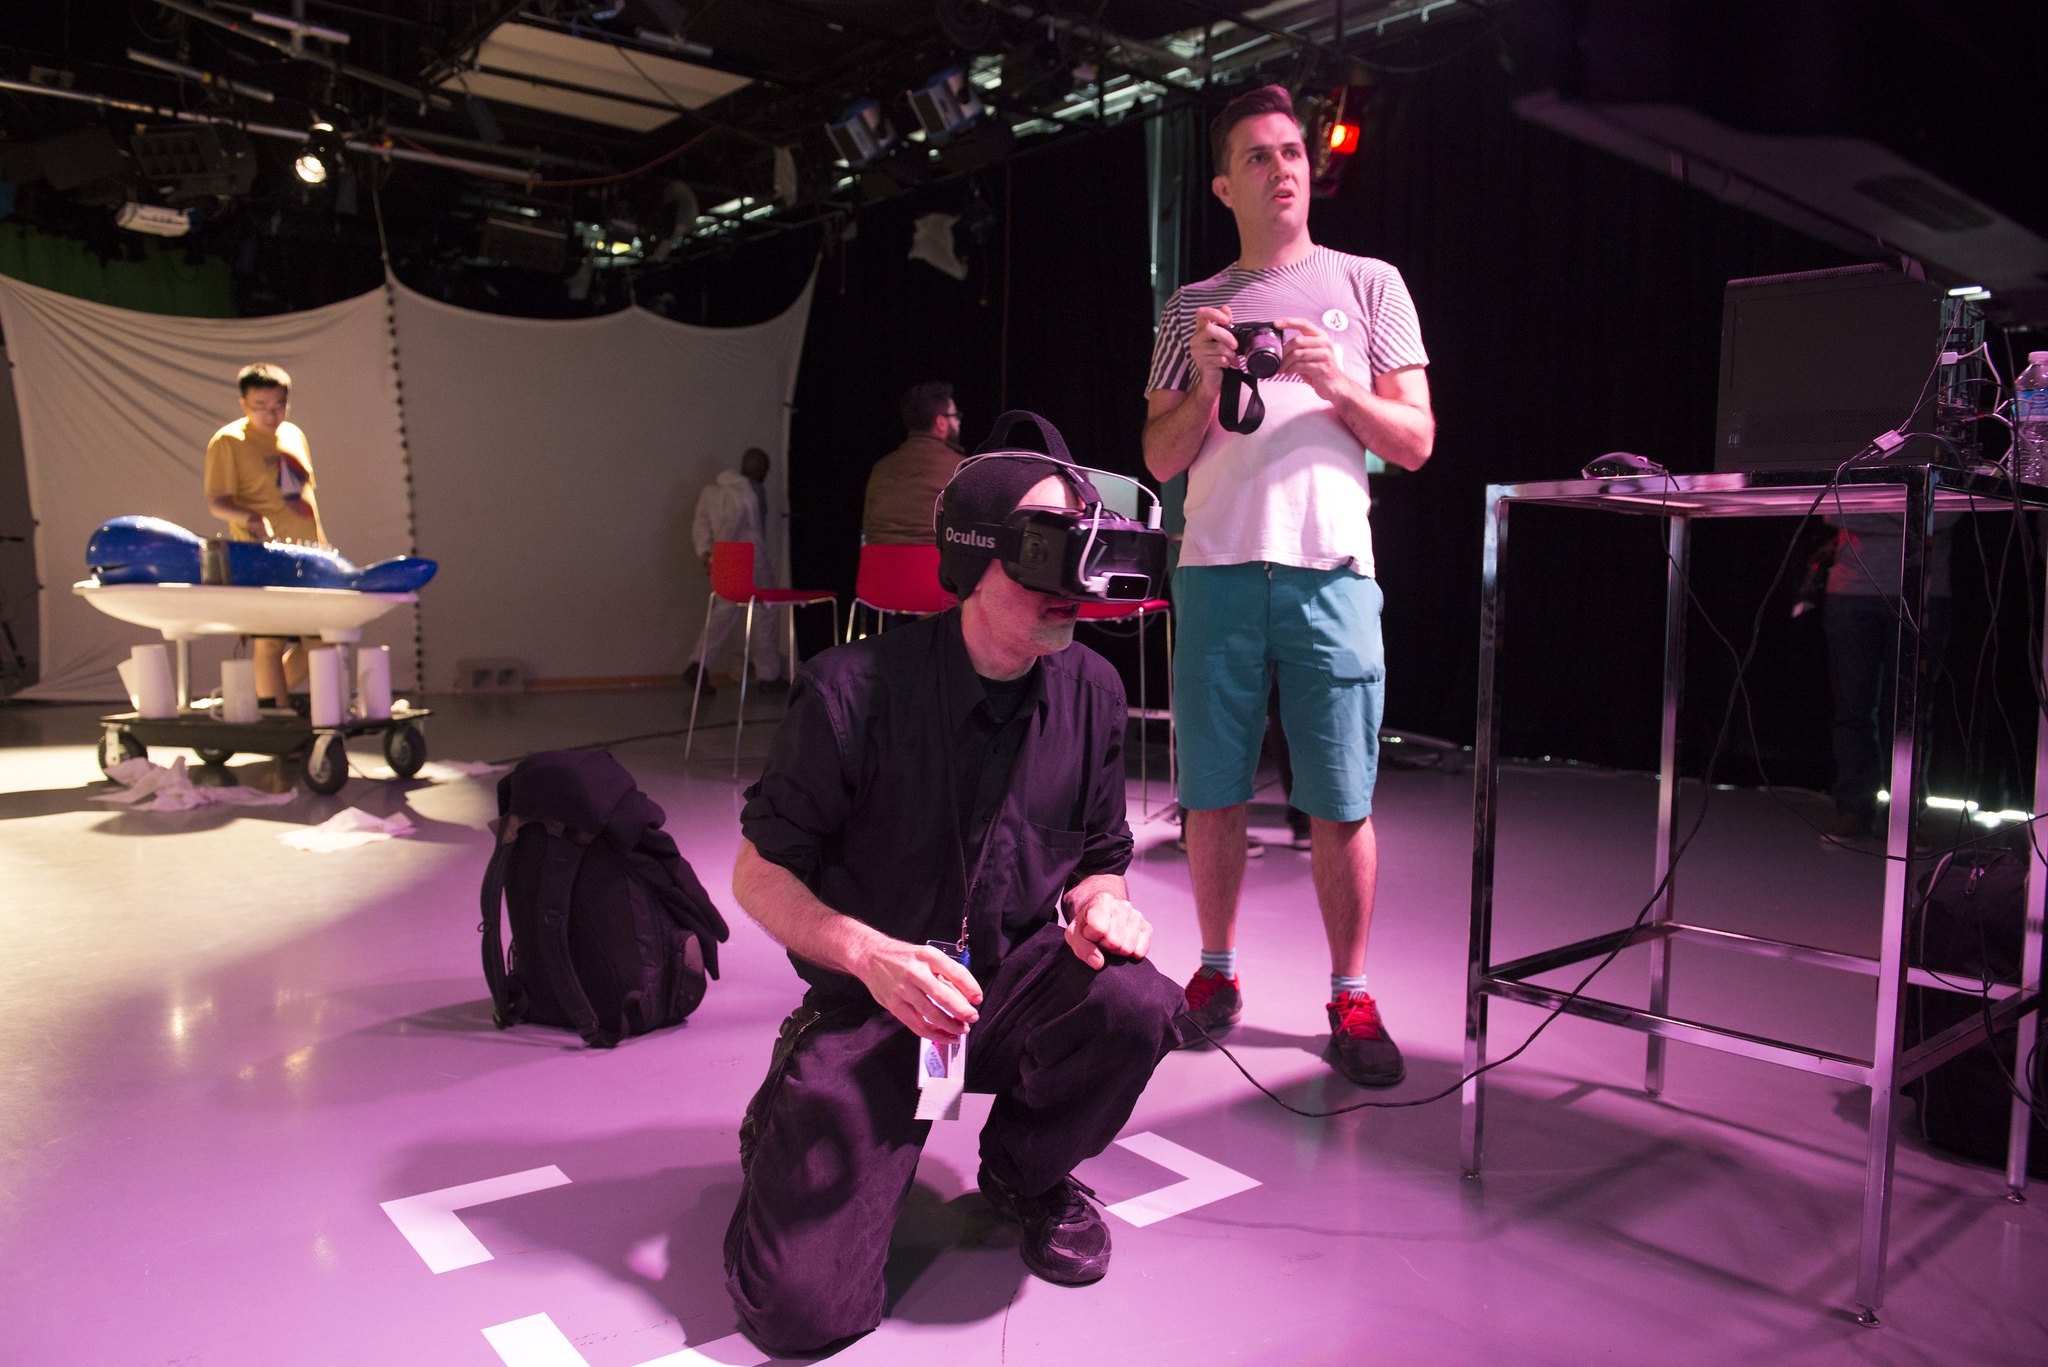 A man is crouched down using a smart glasses device for viewing Augmented reality while another man is standing beside him watching the screen.